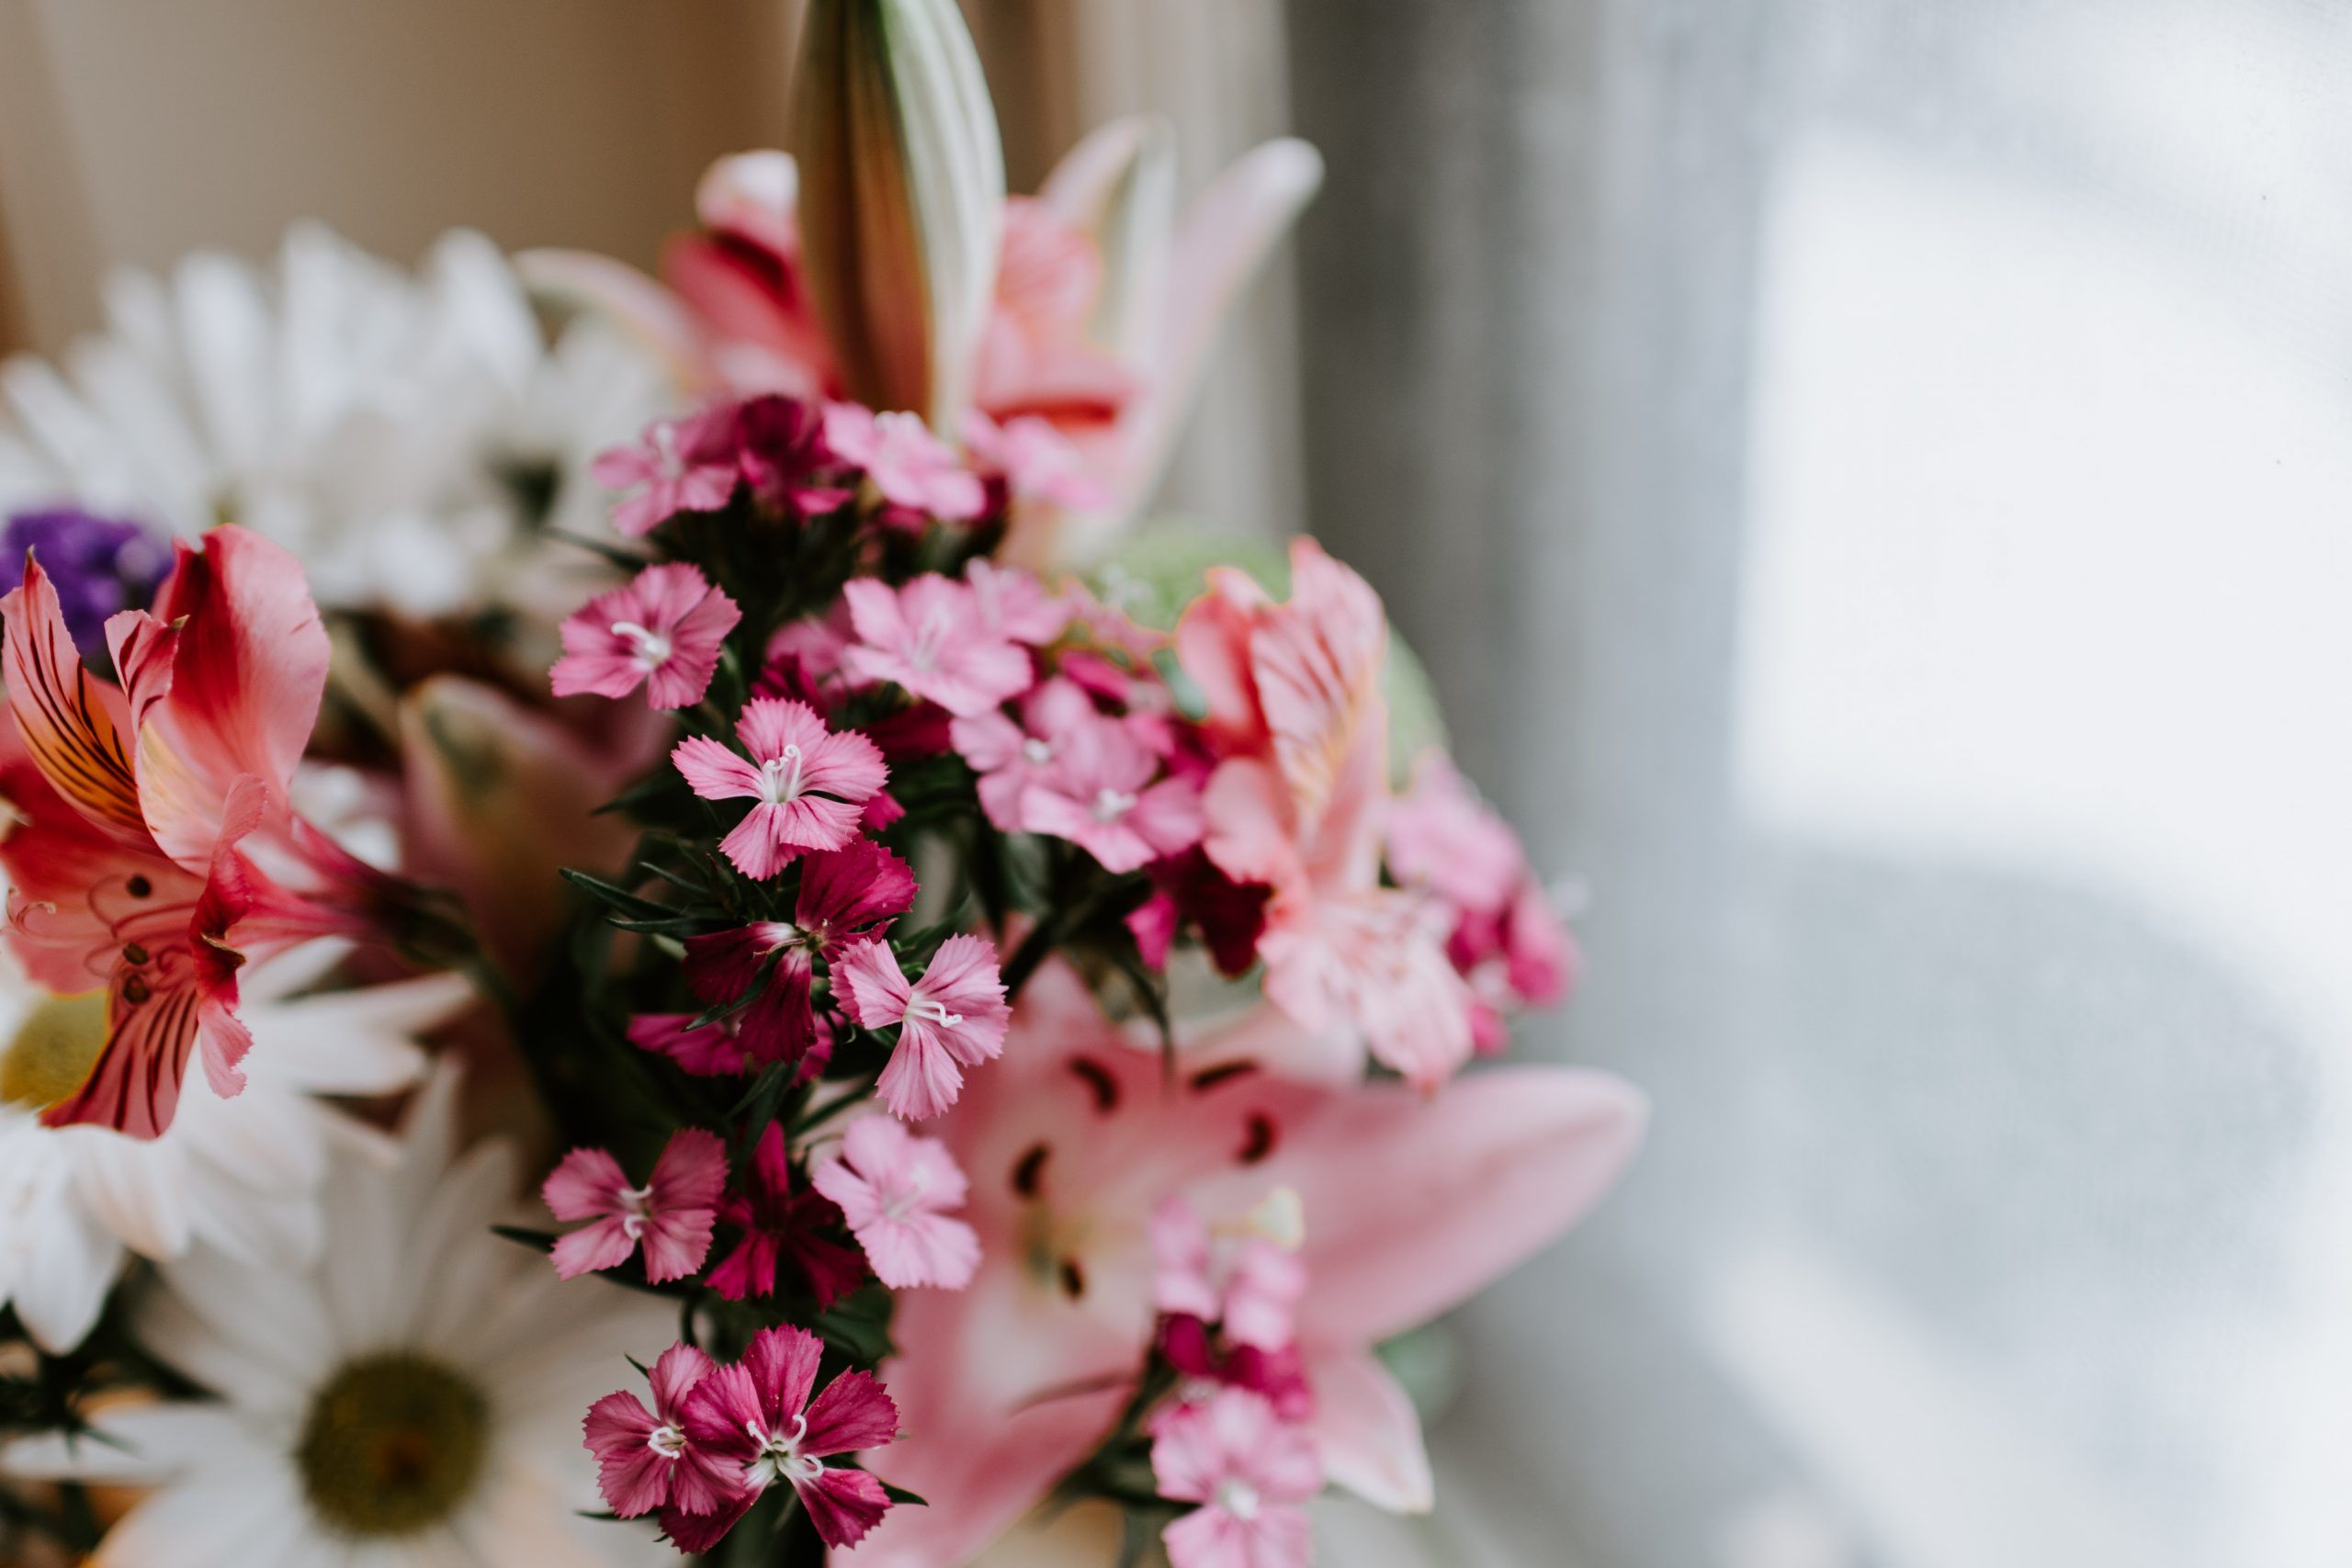 a bouquet of pretty pink and white flowers.